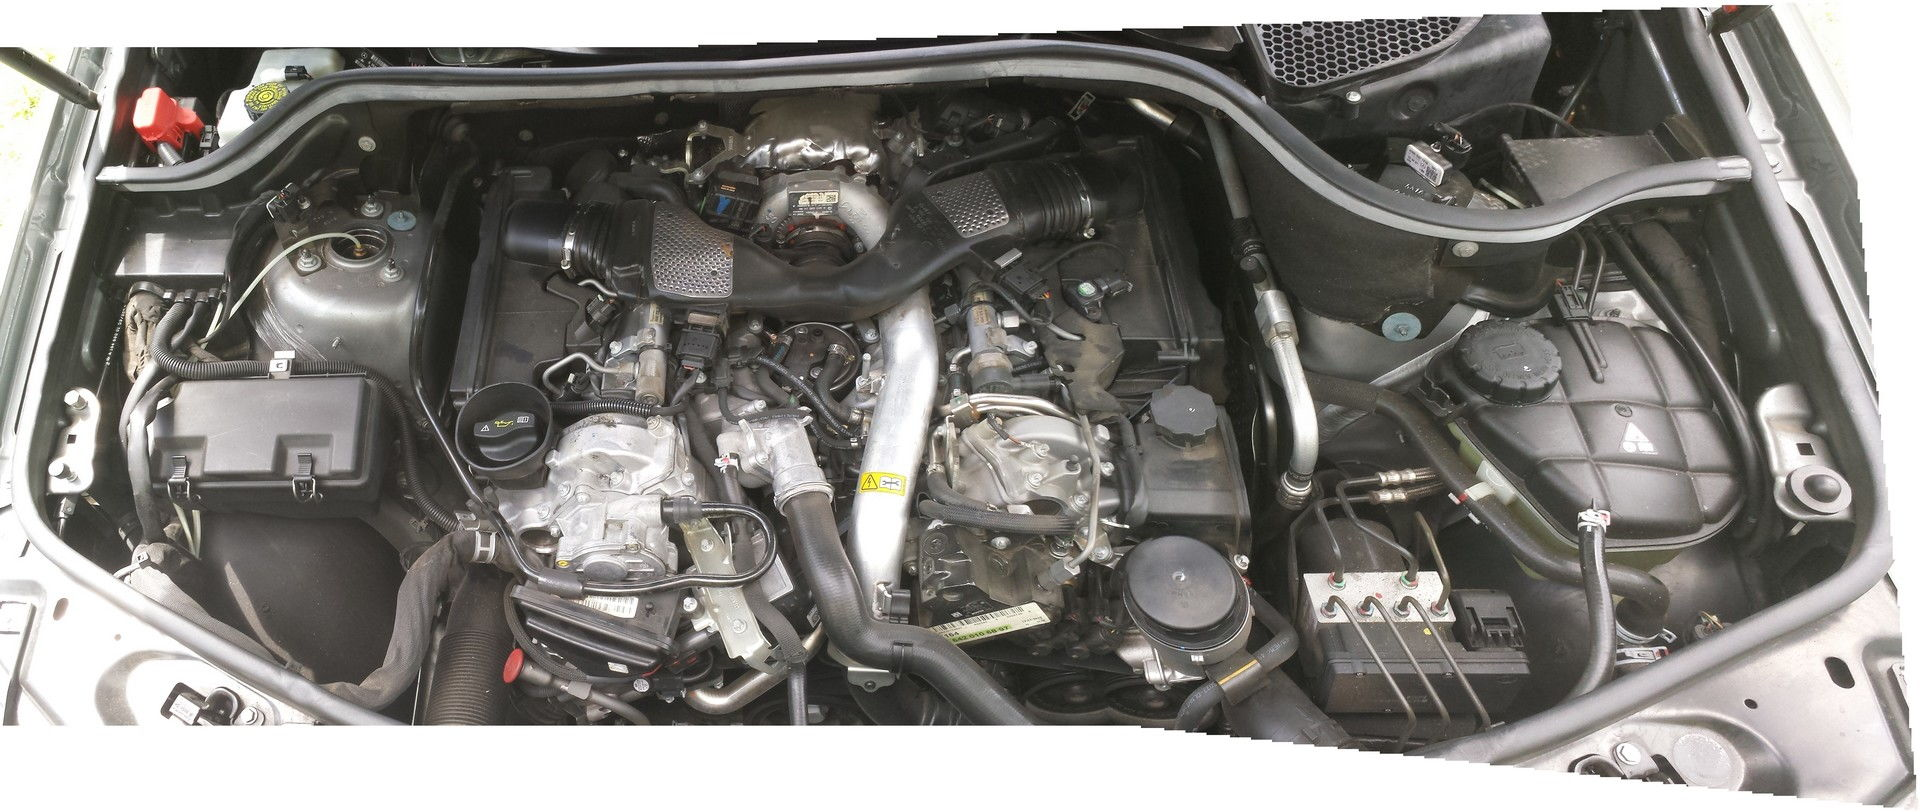 ecu wiring diagram mercedes 2002 saturn stereo w164 - where are glow plugs in photo mbworld.org forums